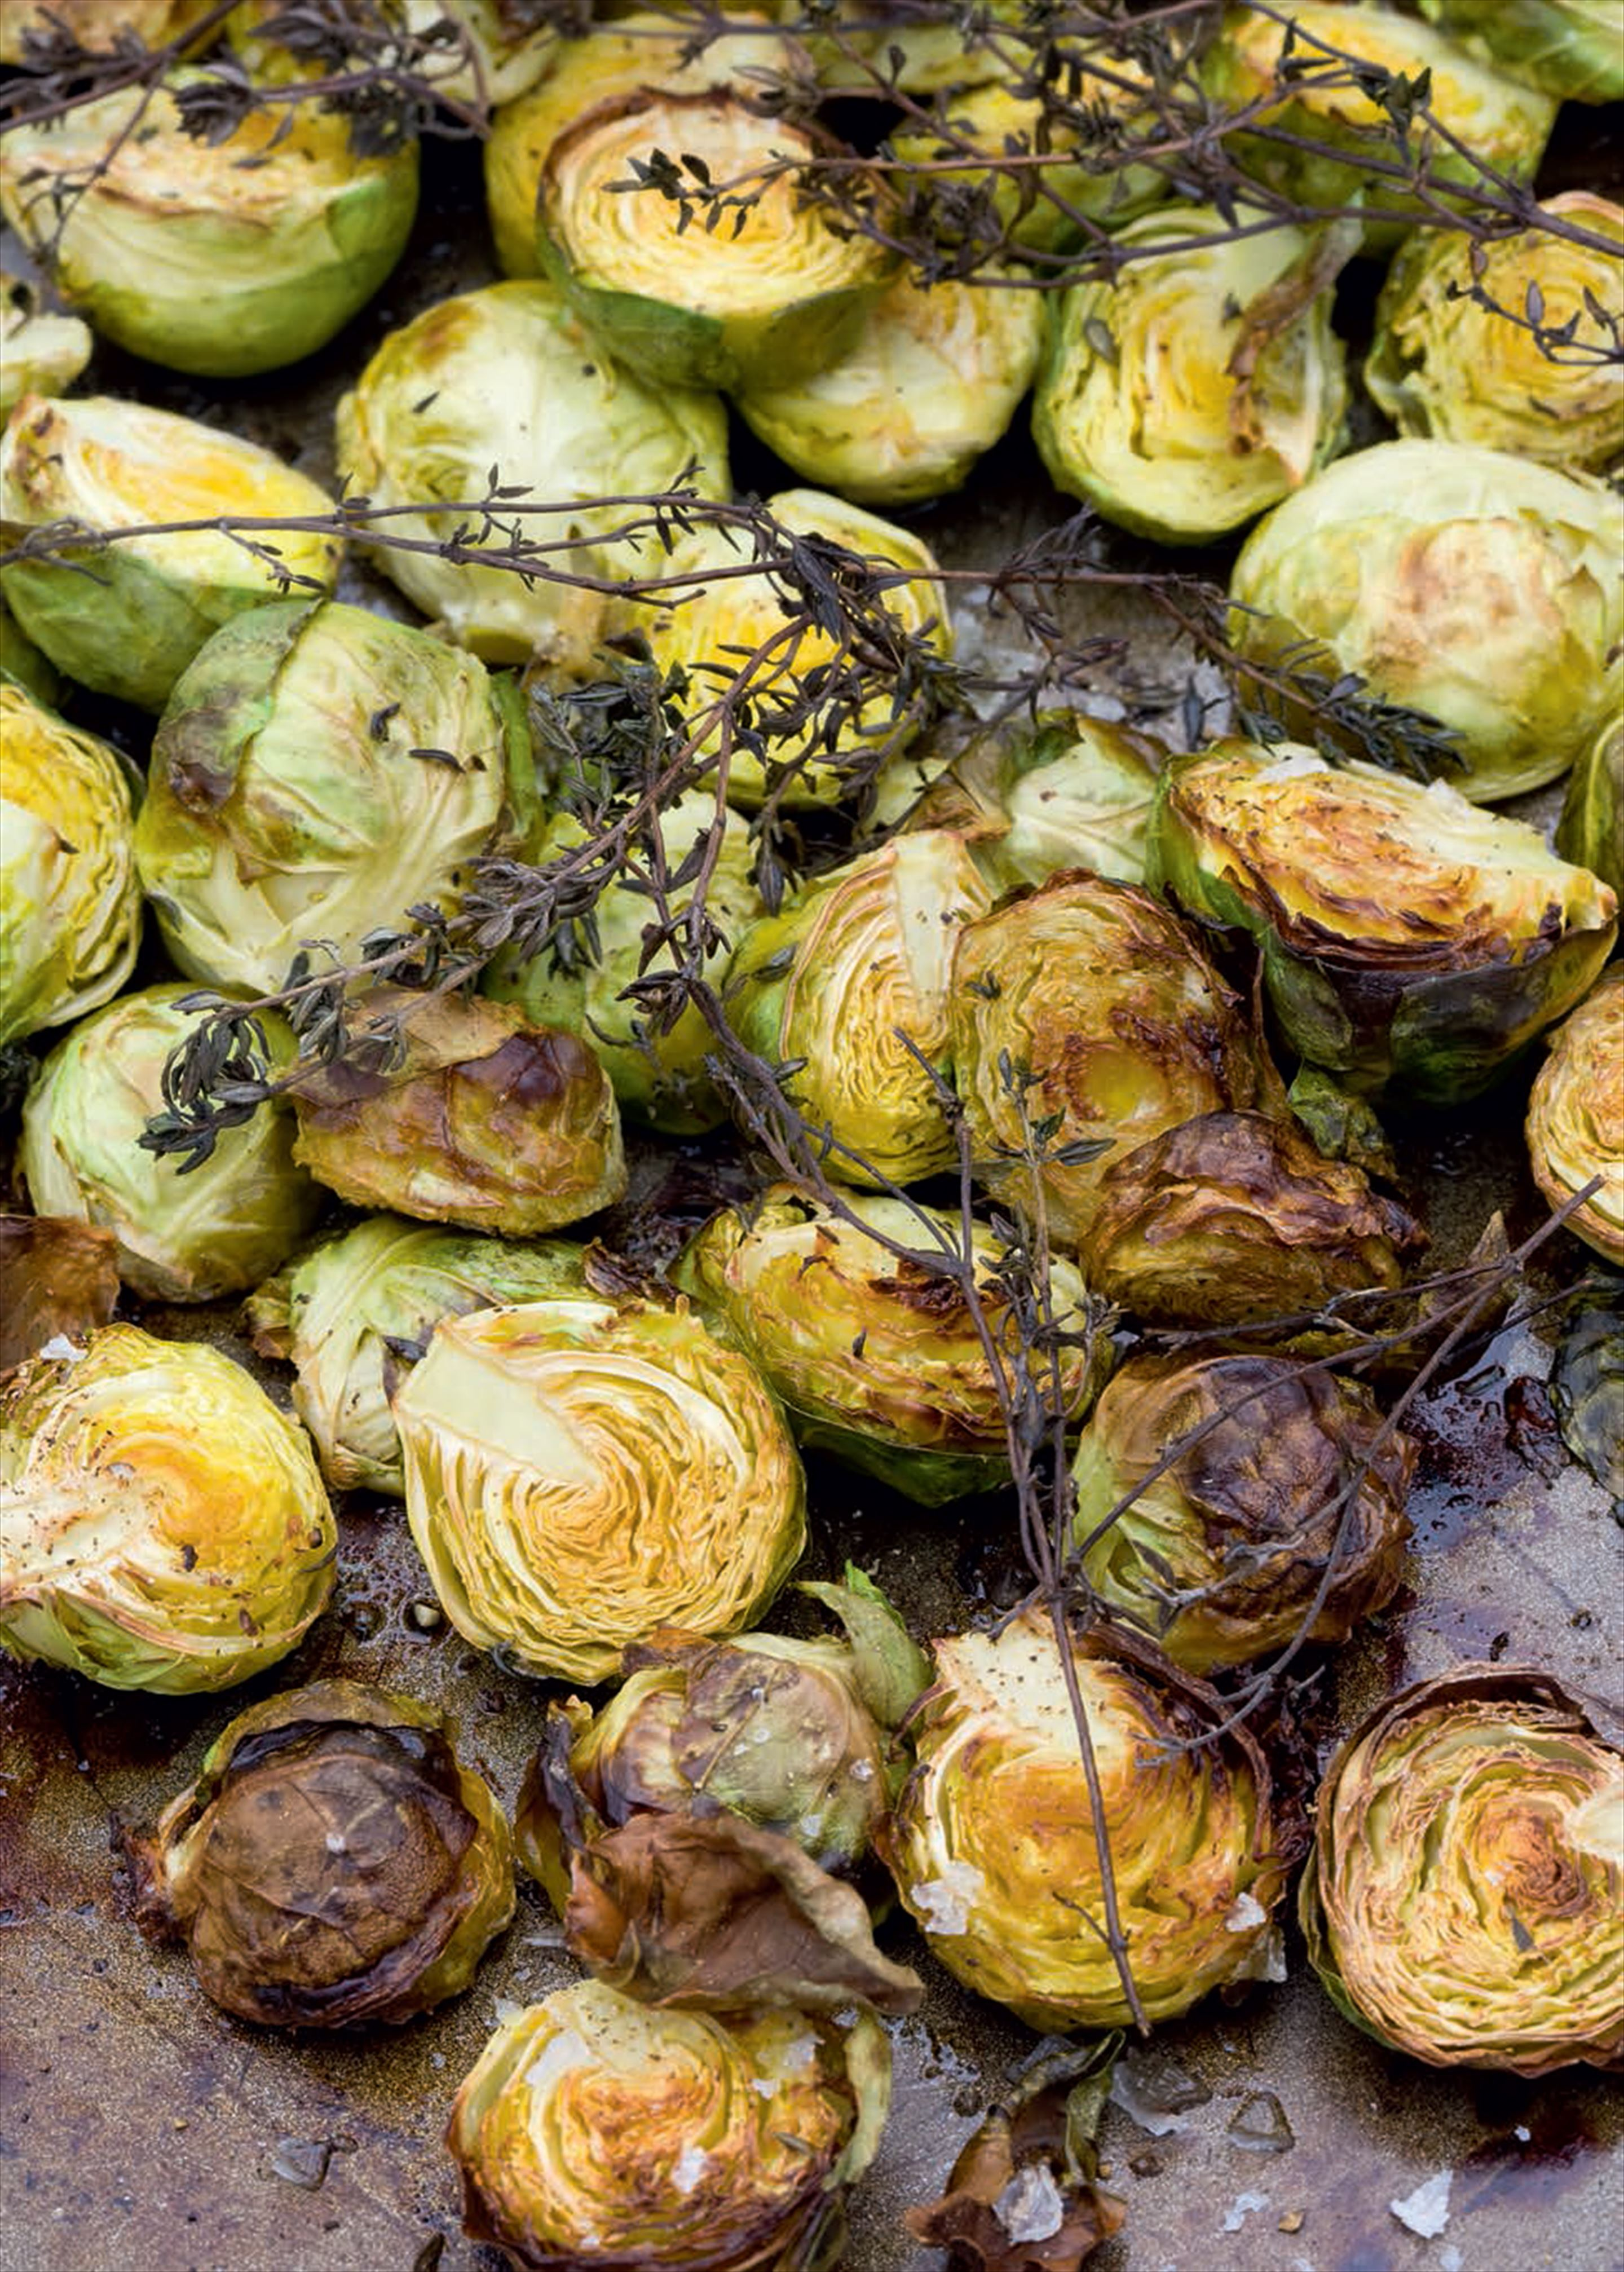 Shredded Brussels sprouts with ginger and toasted almonds